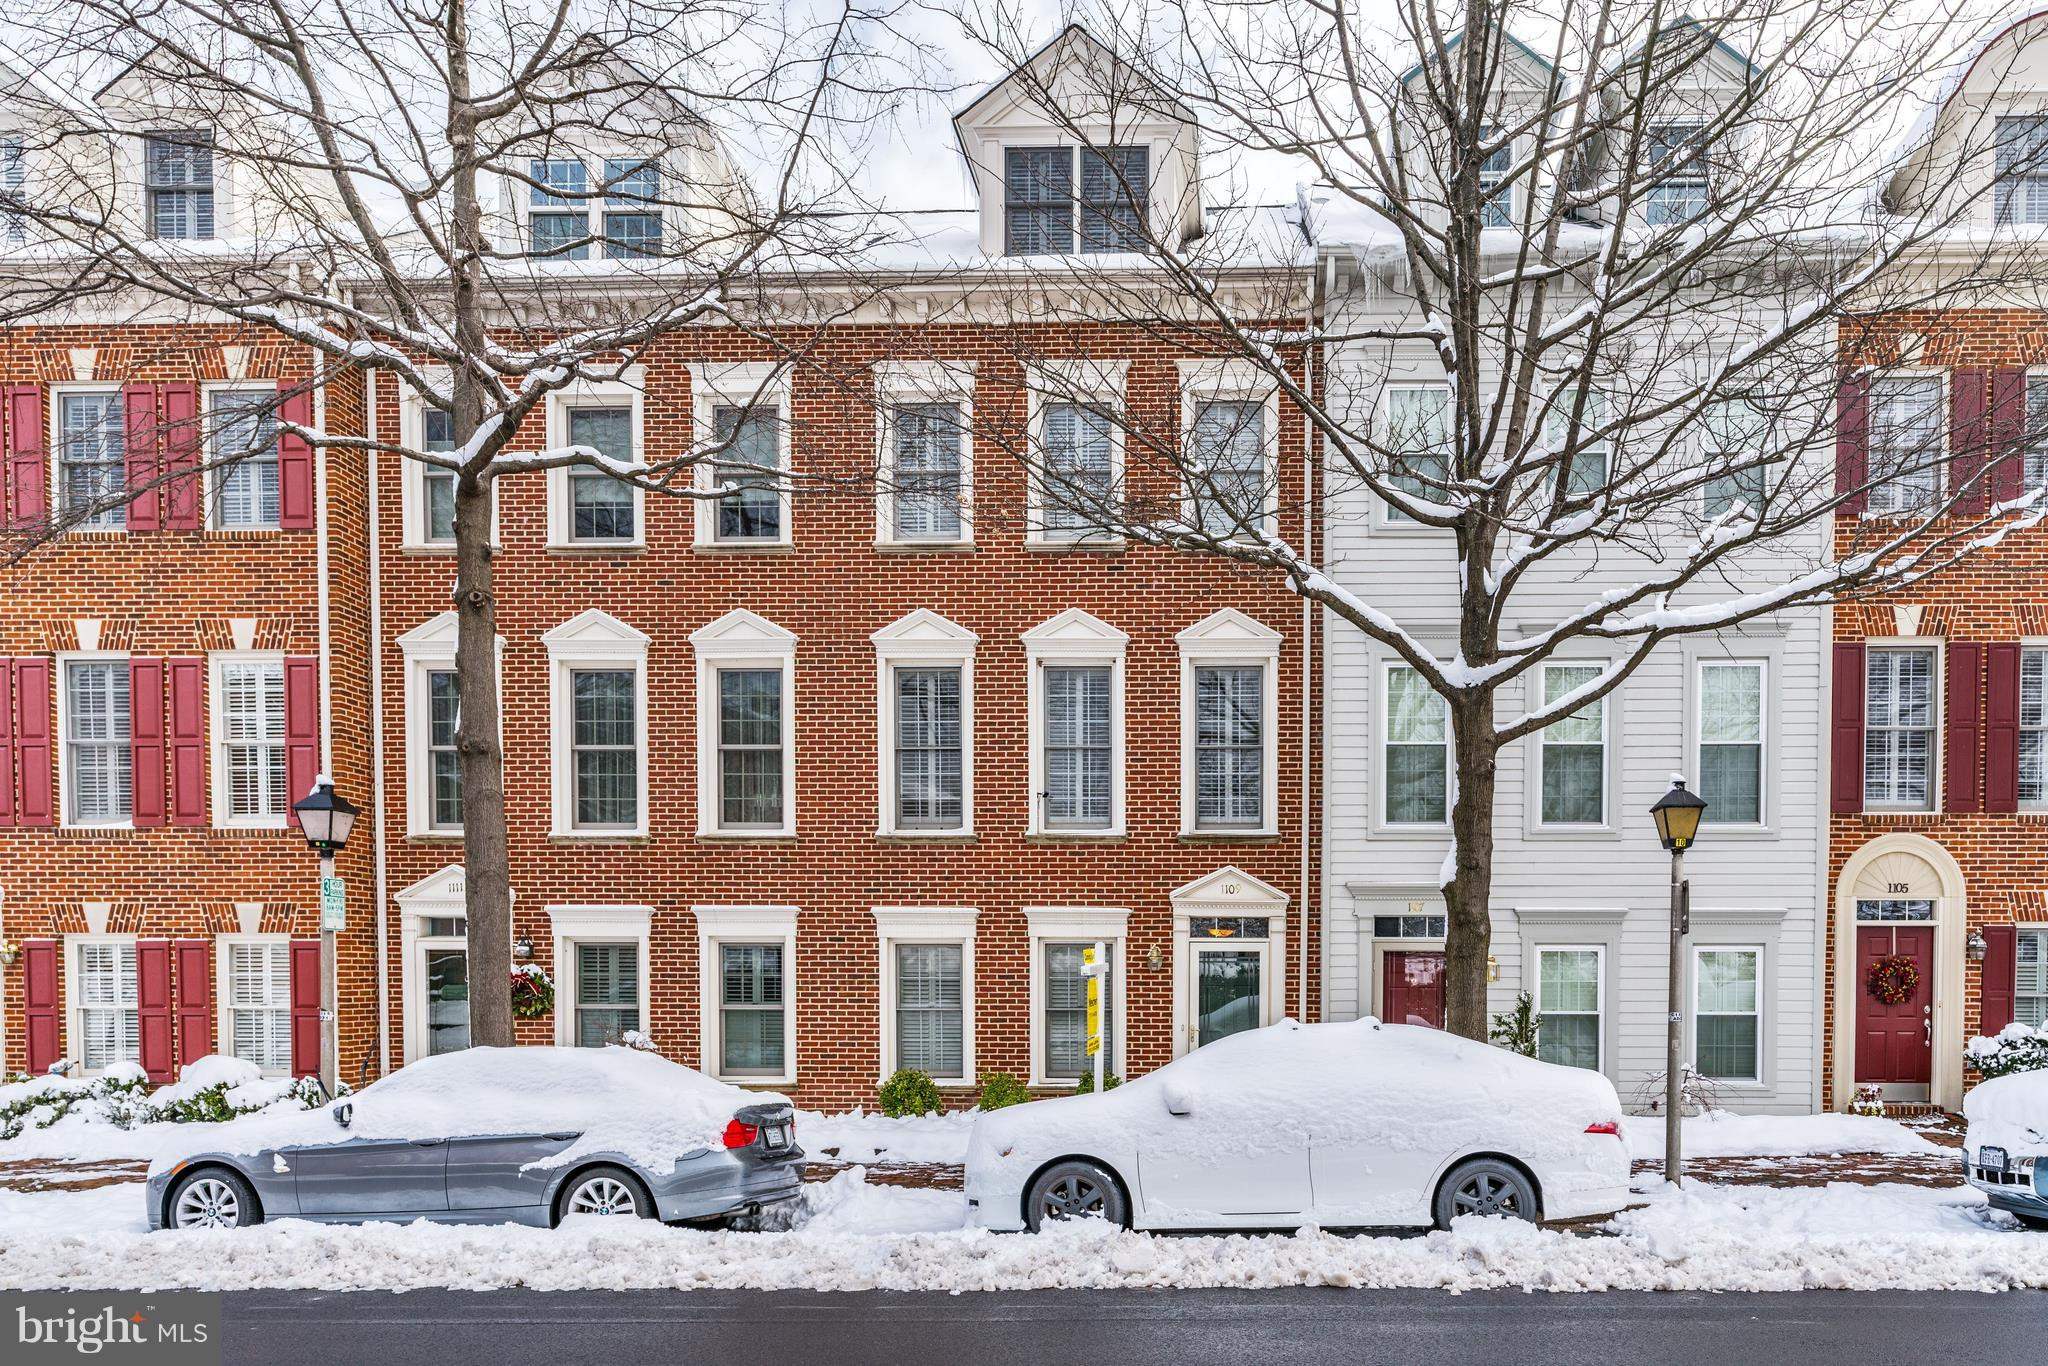 This is a four level brick garage townhouse with $40,000 of owner improvements and upgrades located just 2 blocks from the Potomac and 2 lights to the airport and DC.   On the main level, you can enter the foyer  from the rear-load garage or from the front door.  There is also a powder room and a den/office on that level.   Upstairs is the gourmet eat-in kitchen with granite countertops and stainless steel appliances.  The newer sliding glass door has louvers between its panes of glass which allows bright light to enter when opened or privacy when the louvers are  closed.  The door opens onto the deck for convenient grilling and casual dining.   Also on this level is the combination dining/living room which has  a gas fireplace located between the two built-in bookcases.  Plantation  shutters are on all the windows of all levels of the house.  Hardwood floors are on both the main and first levels.  Upstairs is the en suite master bedroom and bath.  The walk-in closet has been redesigned by California Closets.  The second bedroom also has a walk-in closet.  This level has a second full bath and a convenient laundry area with ample storage above the washer and dryer.  The top level has a second guest bedroom and the third full bath.  Between the guest bedroom and bath,  there is a comfortable family room and three deep storage closets.  There is a fourth closet in the full bath.  Both top levels and the stairs have deep carpeting with upgraded pads.  The list of owner improvements and upgrades include a replaced hot water heater, new roof, new HVAC, wood deck replaced and stained, a replaced storm door and sliding glass door, refinished hardwood floors and PVC wood on dormer windows in front.Hearthstone Mews is a small community of 29 townhomes located in north Old Town close enough to the shops and restaurants to walk to them but not close enough to experience much traffic.